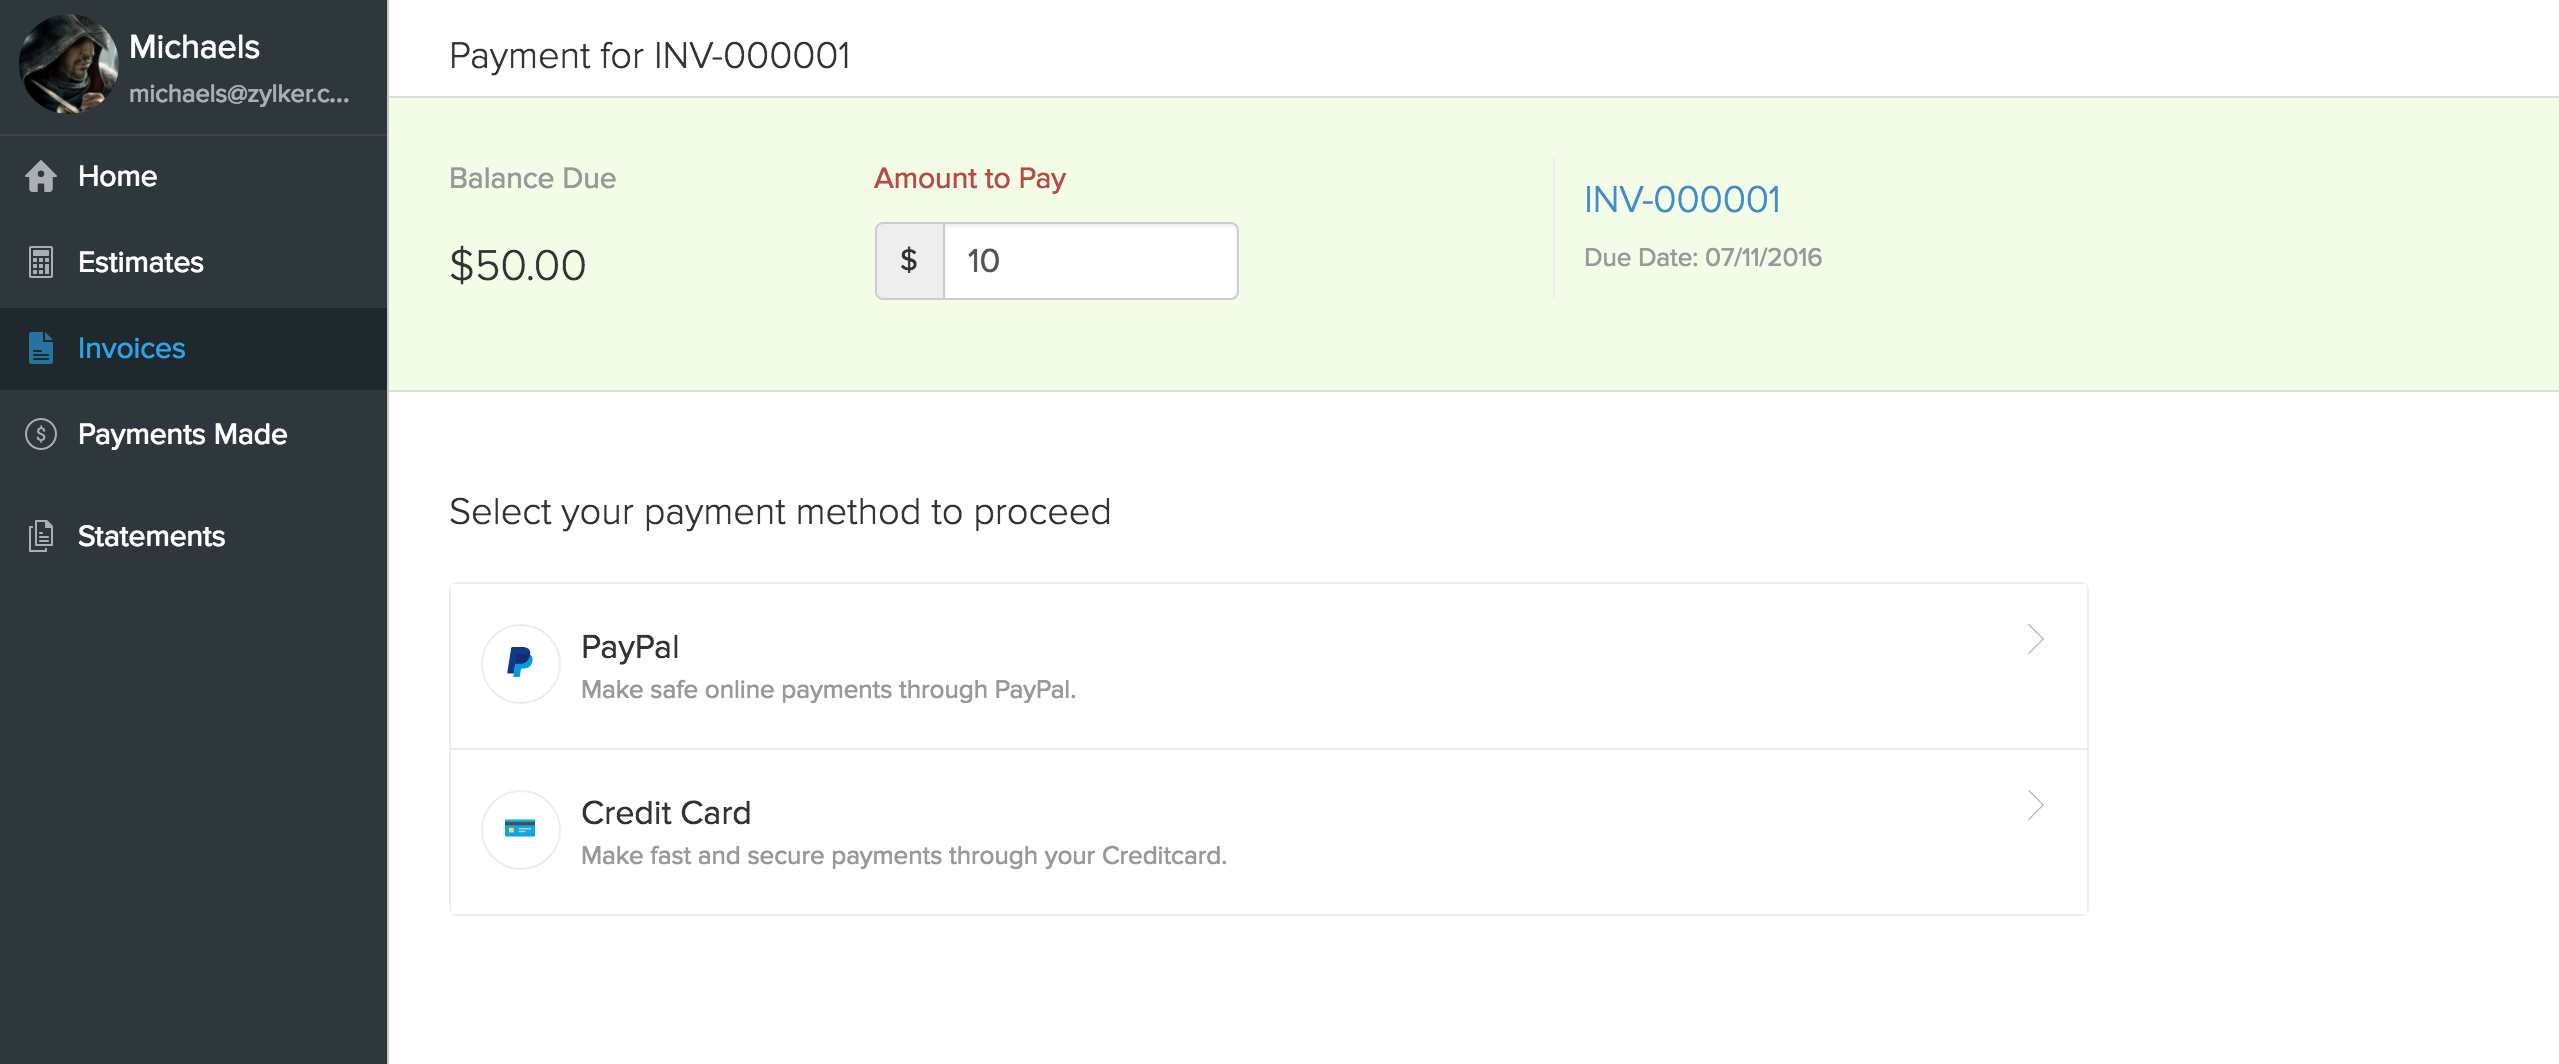 Payment Gateway screen